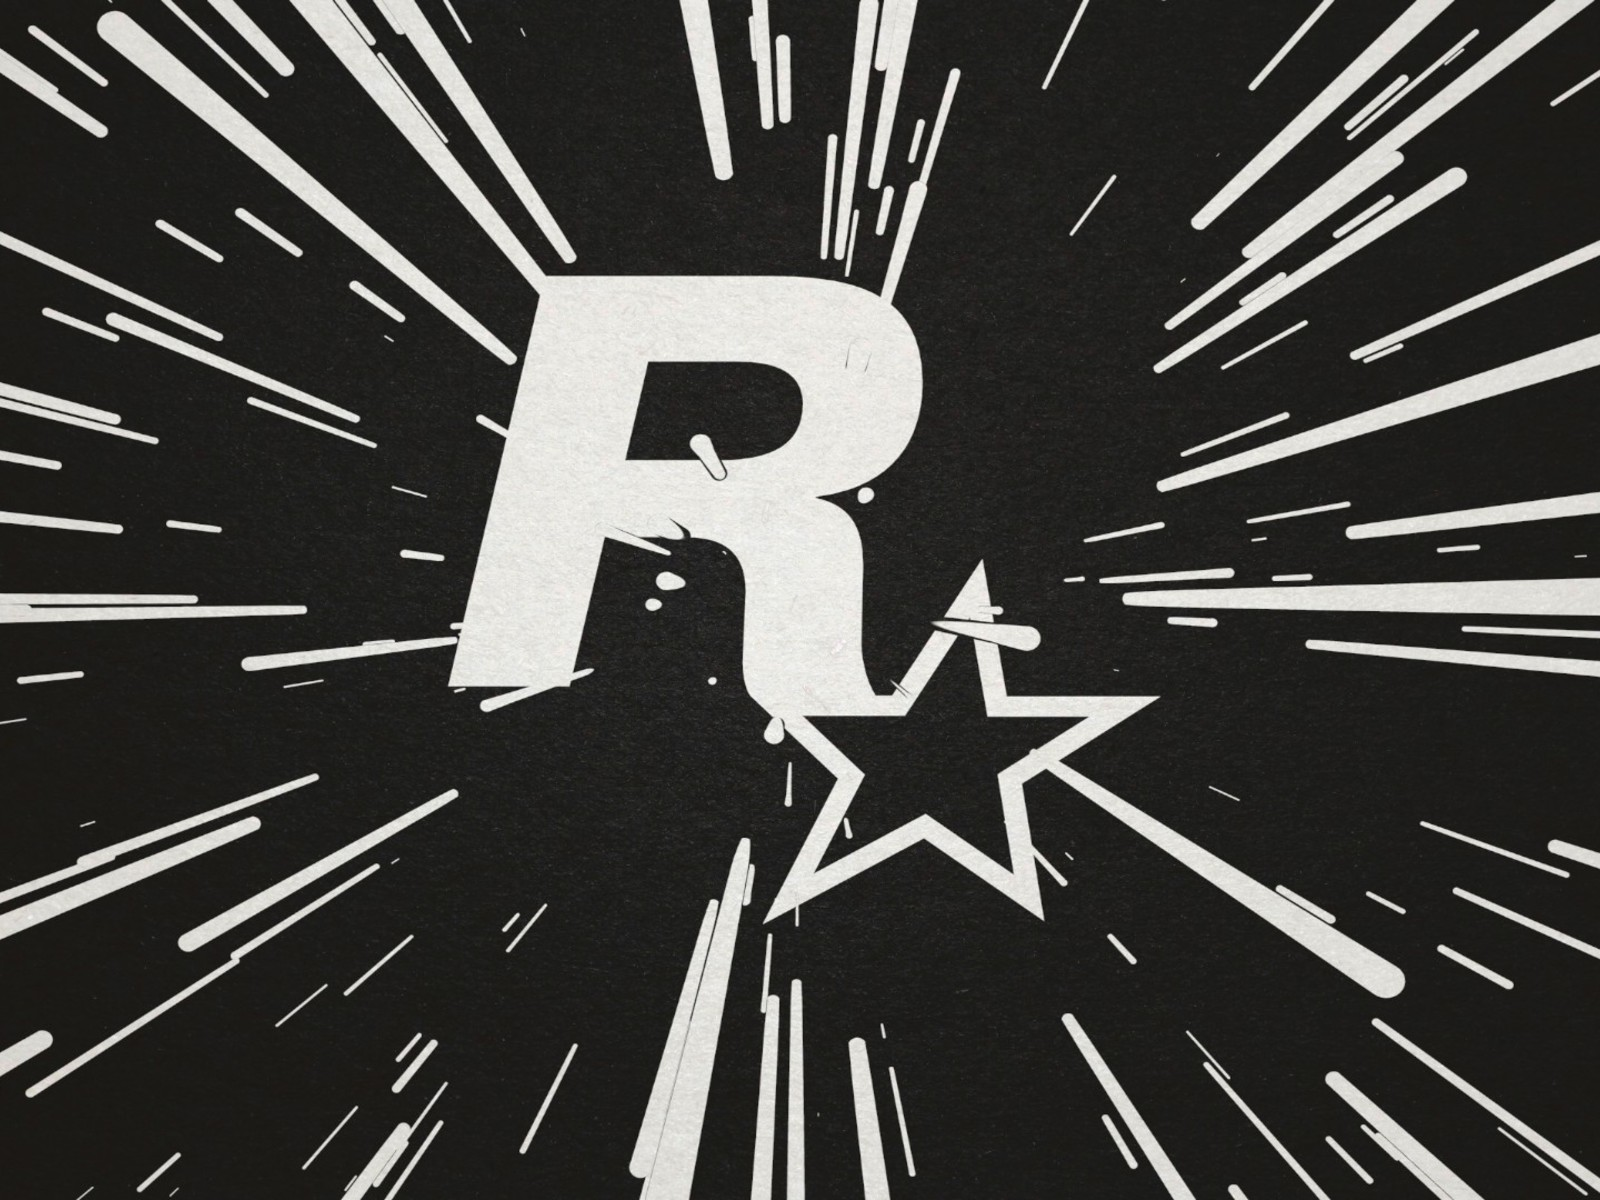 Rockstar Games For Ps4 : Grand theft auto rockstar games game playstation